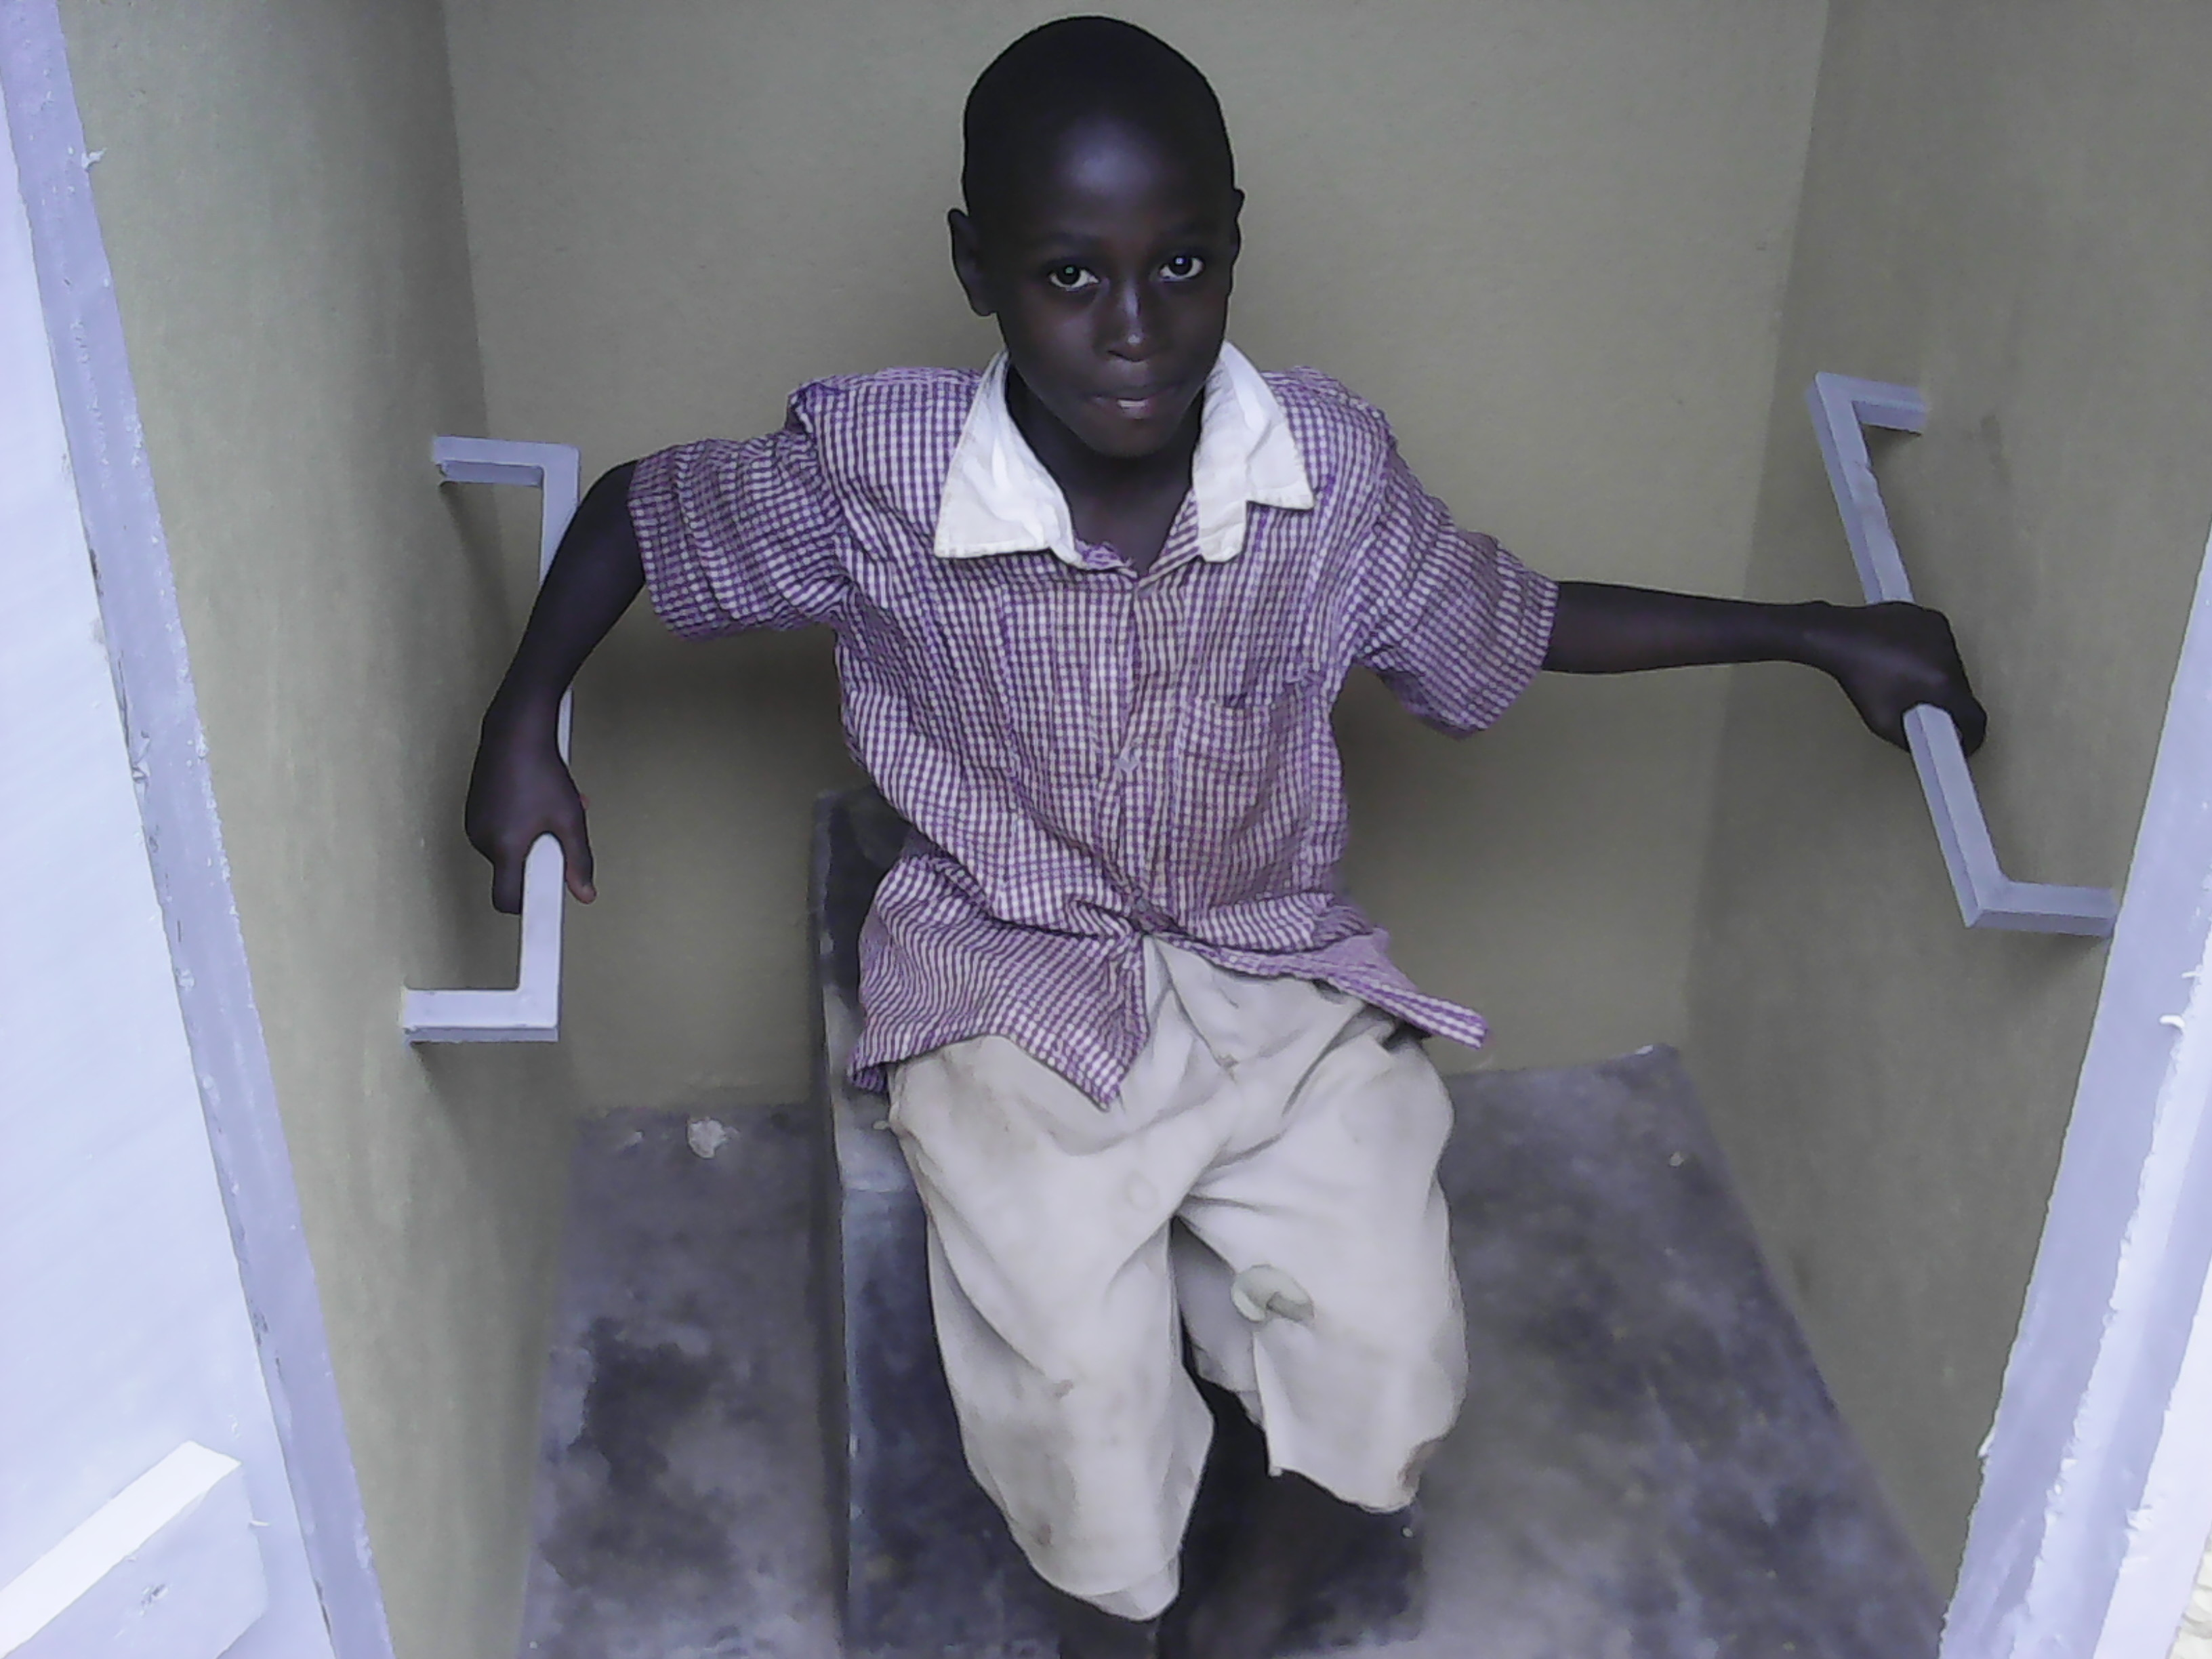 John living with disabilities tries on sensitive toilets constructed by CESA-Uganda